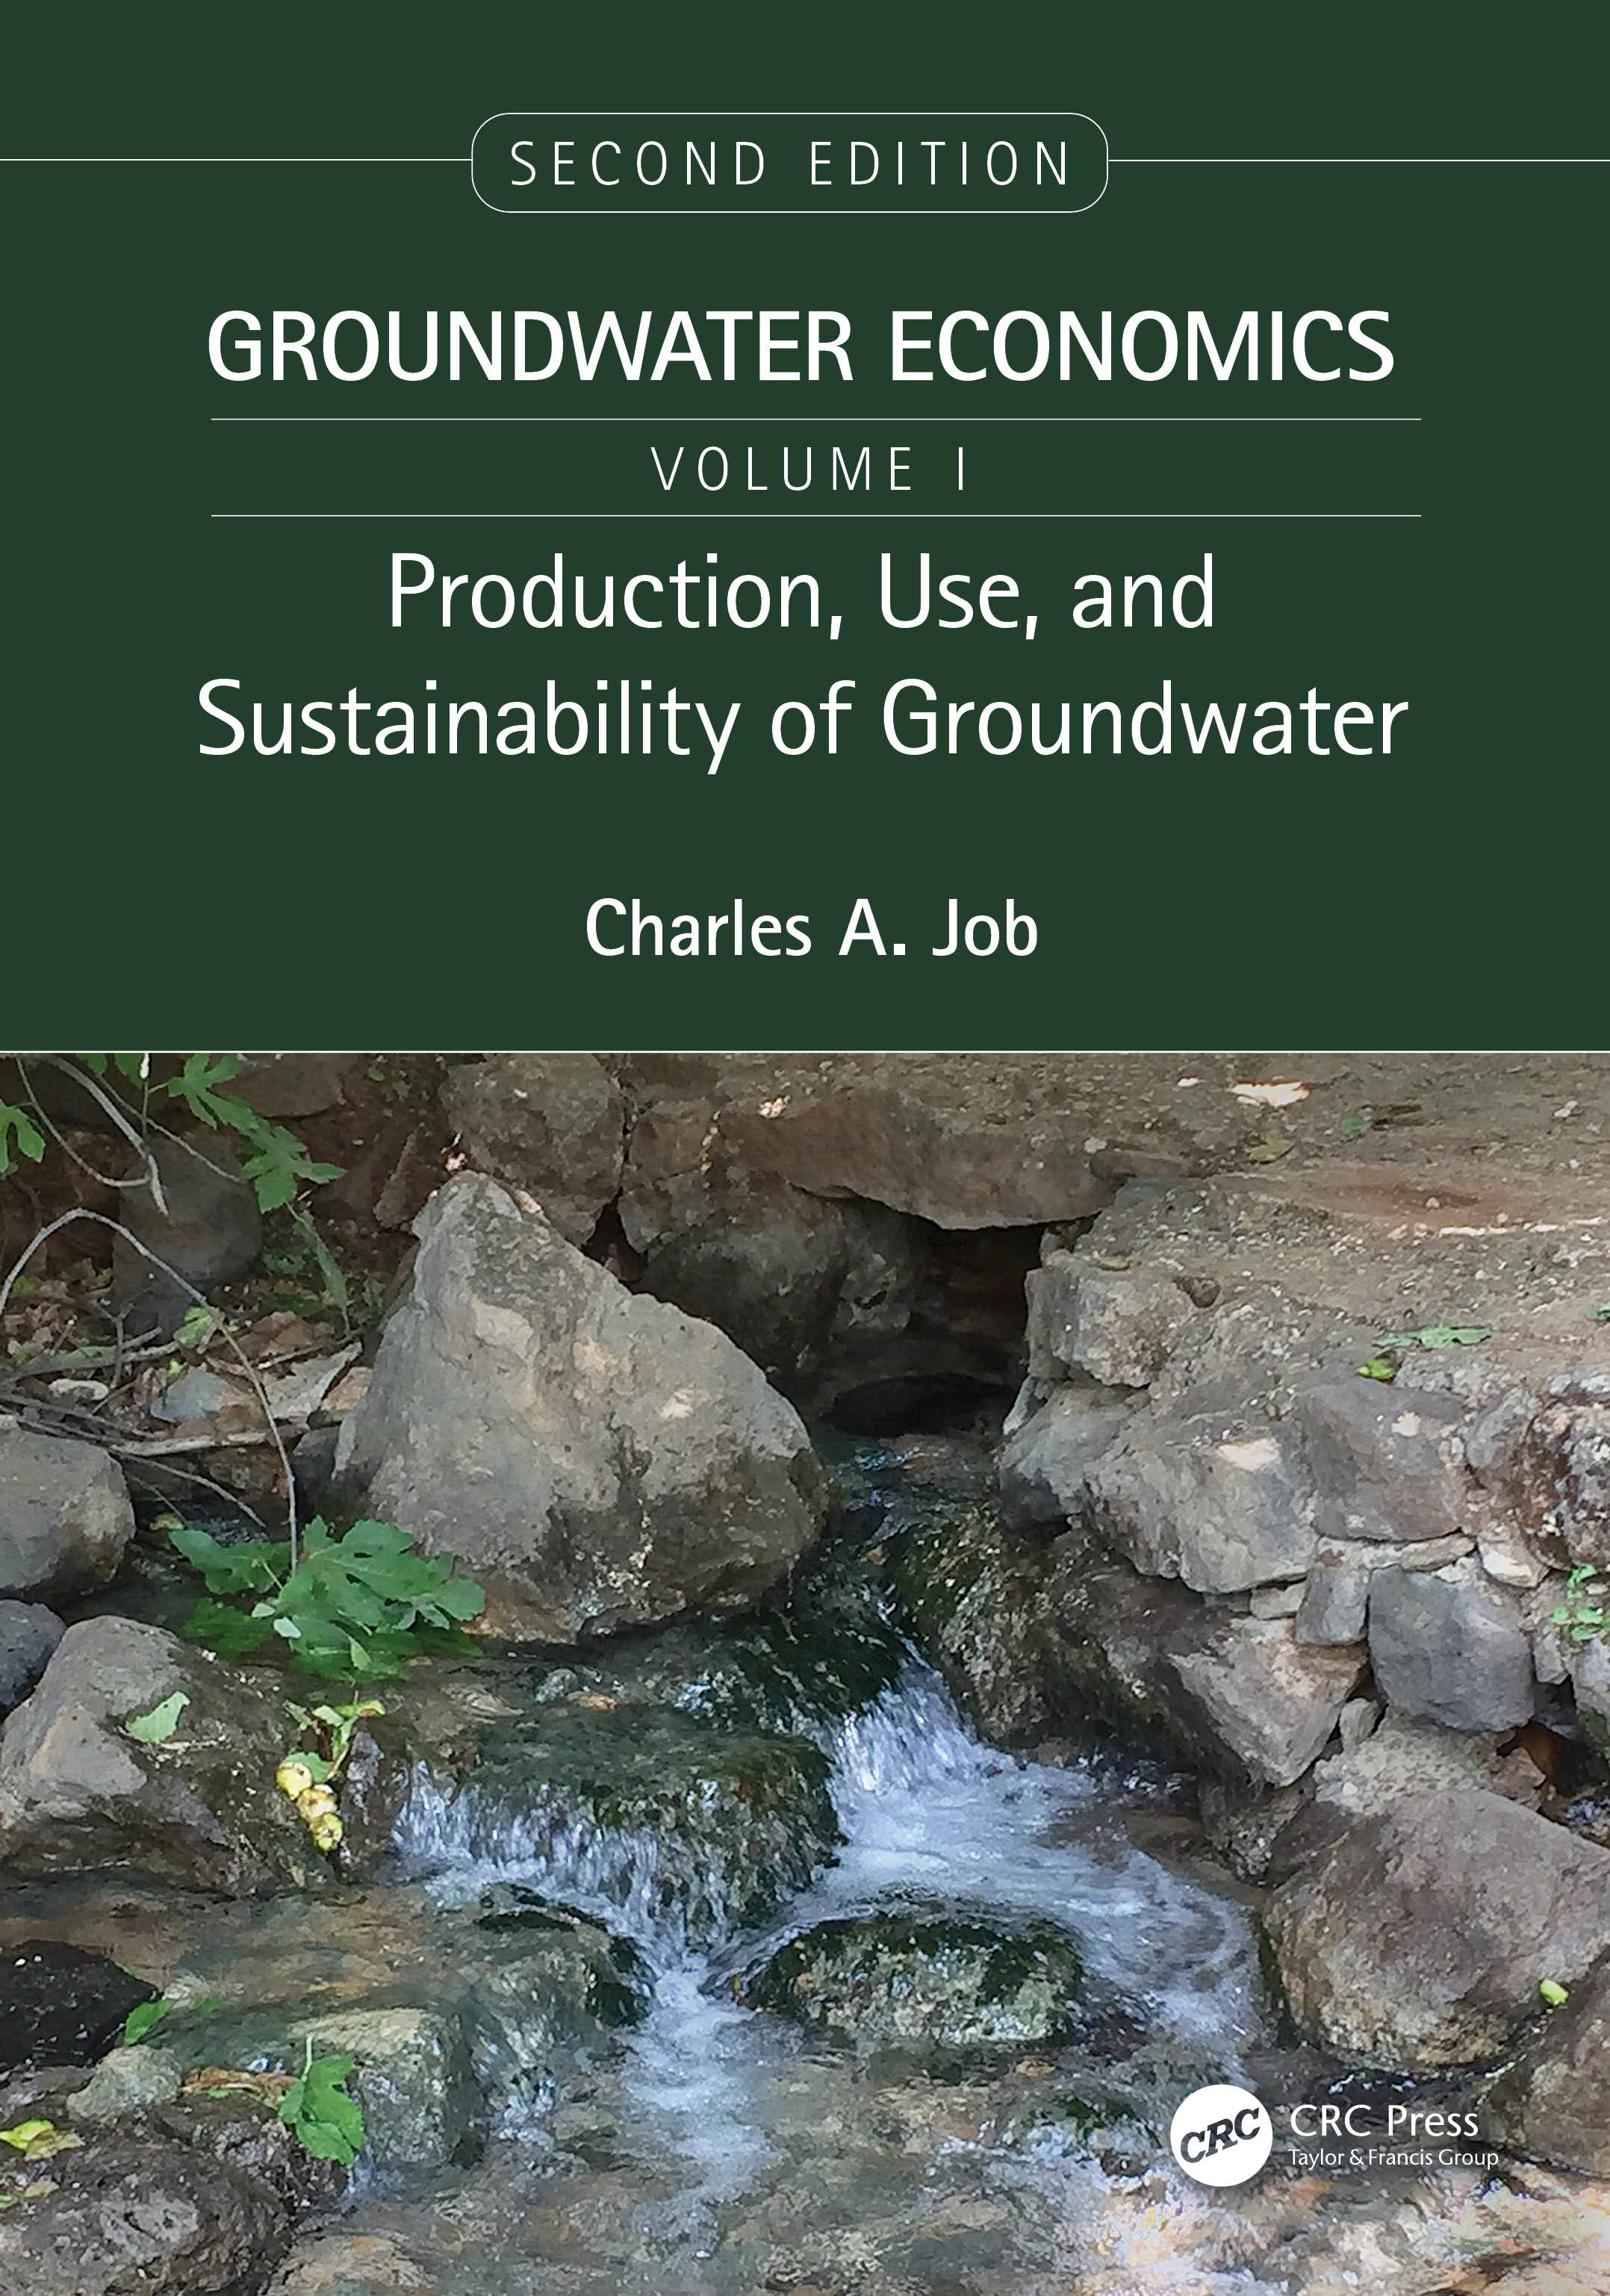 Microeconomics and Groundwater Markets